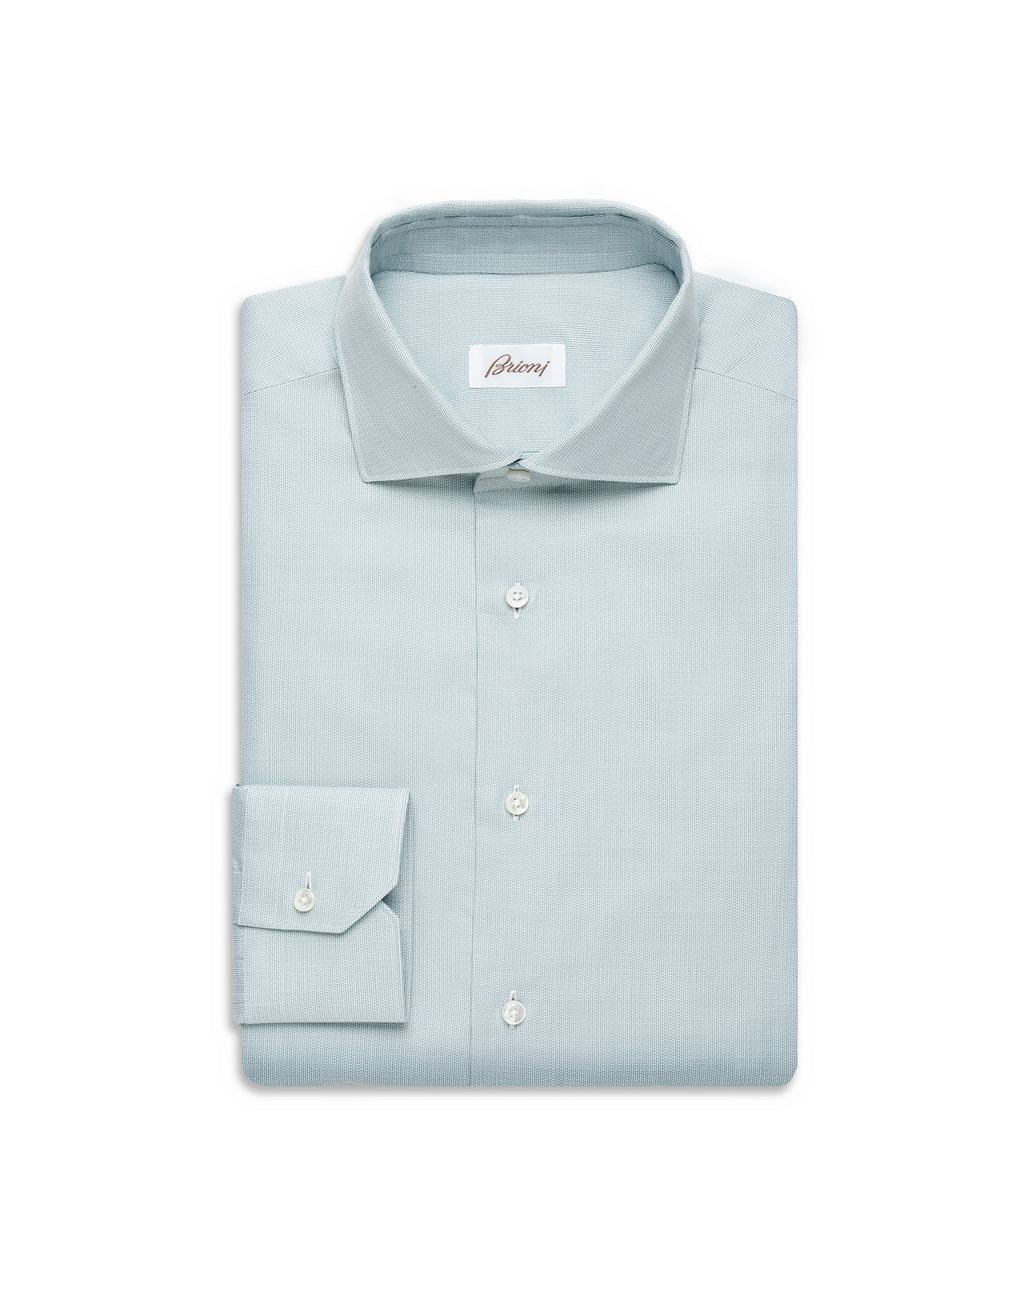 BRIONI Light Green Hopsack Formal Shirt Formal shirt Man f